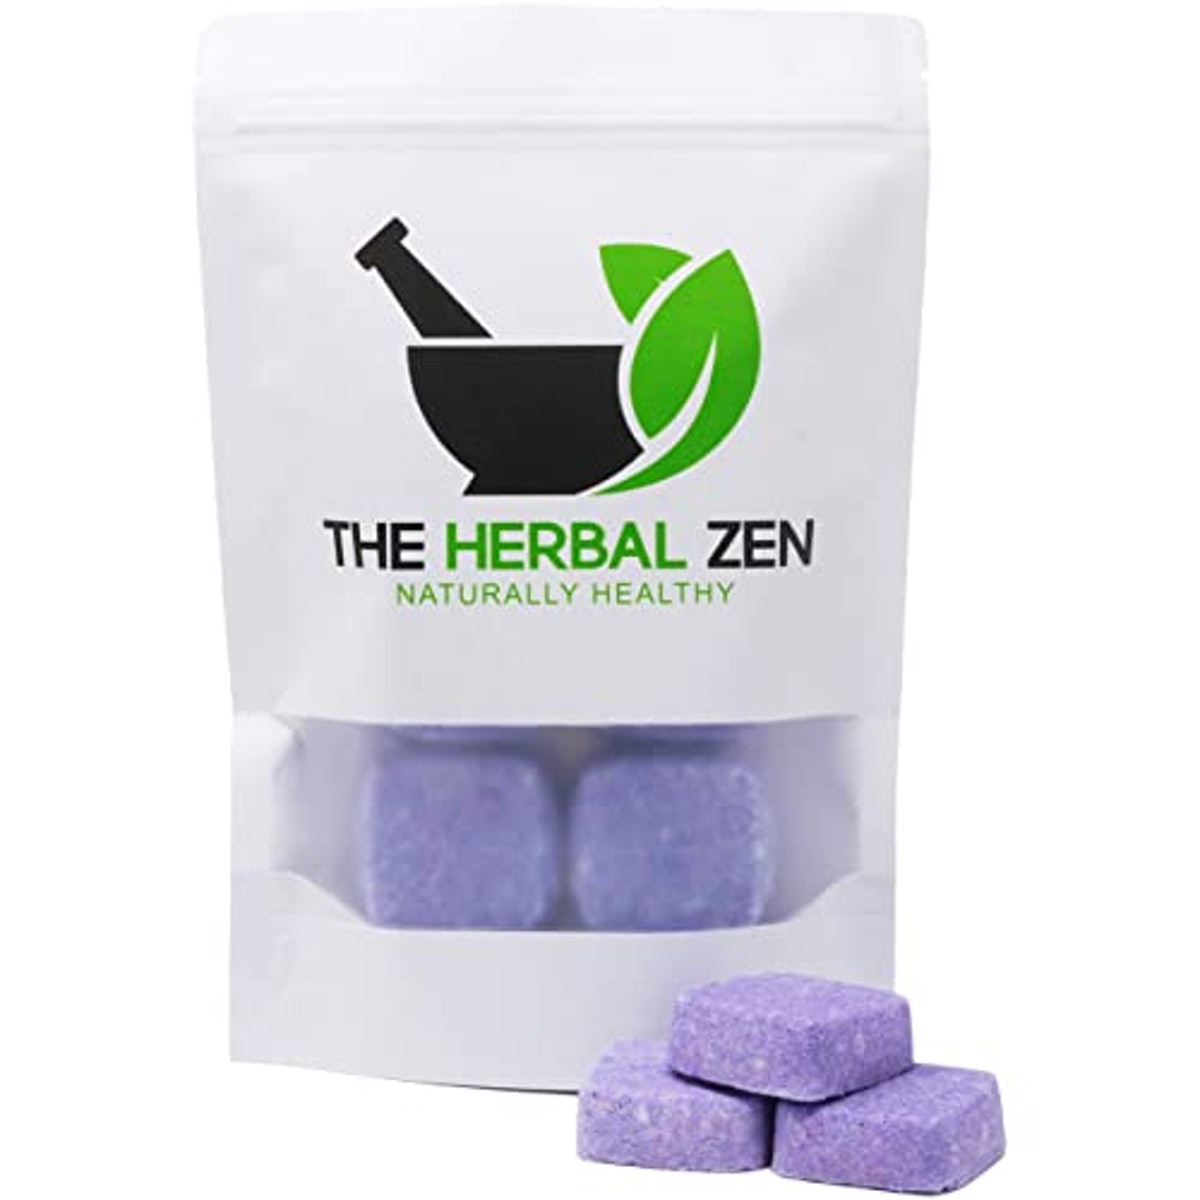 The Herbal Zen Sleepytime Shower Steamers with Lavender and Roman Chamomile